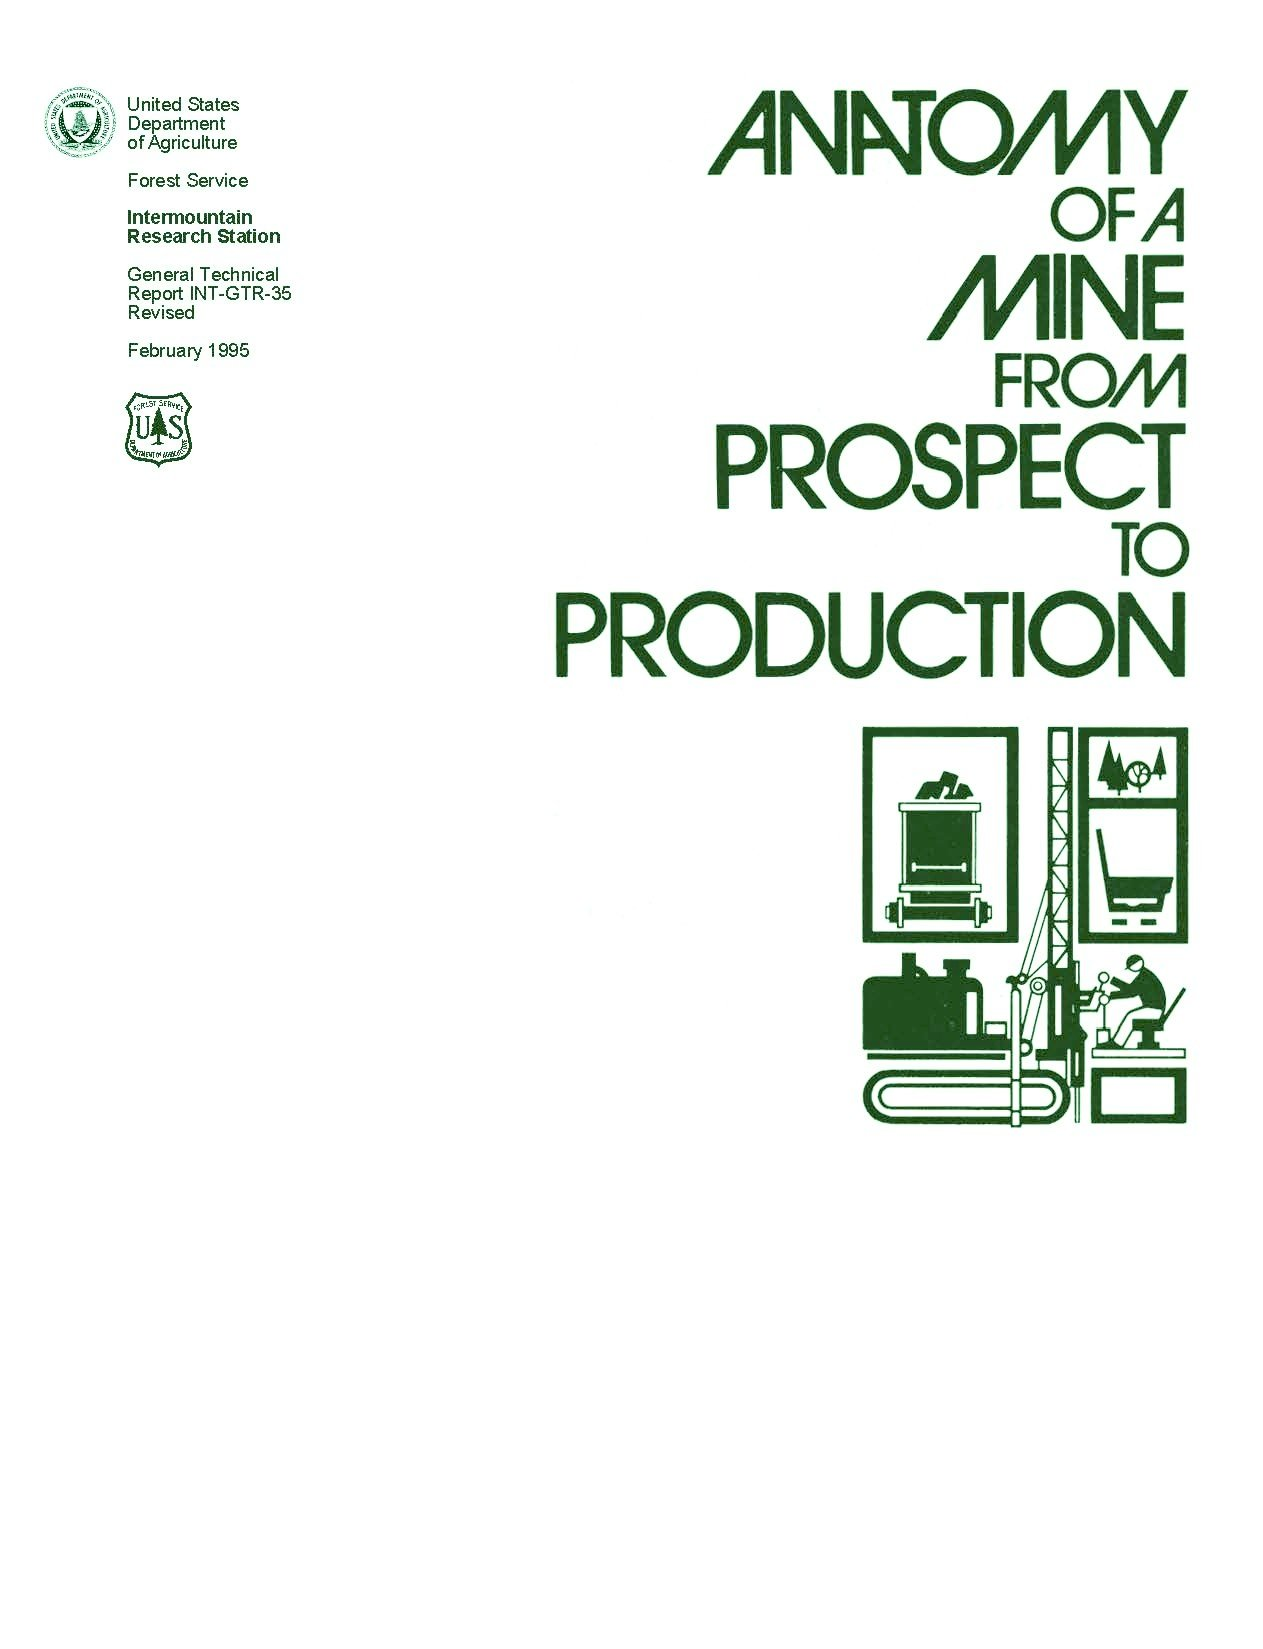 Anatomy Of A Mine From Prospect To Production General Technical